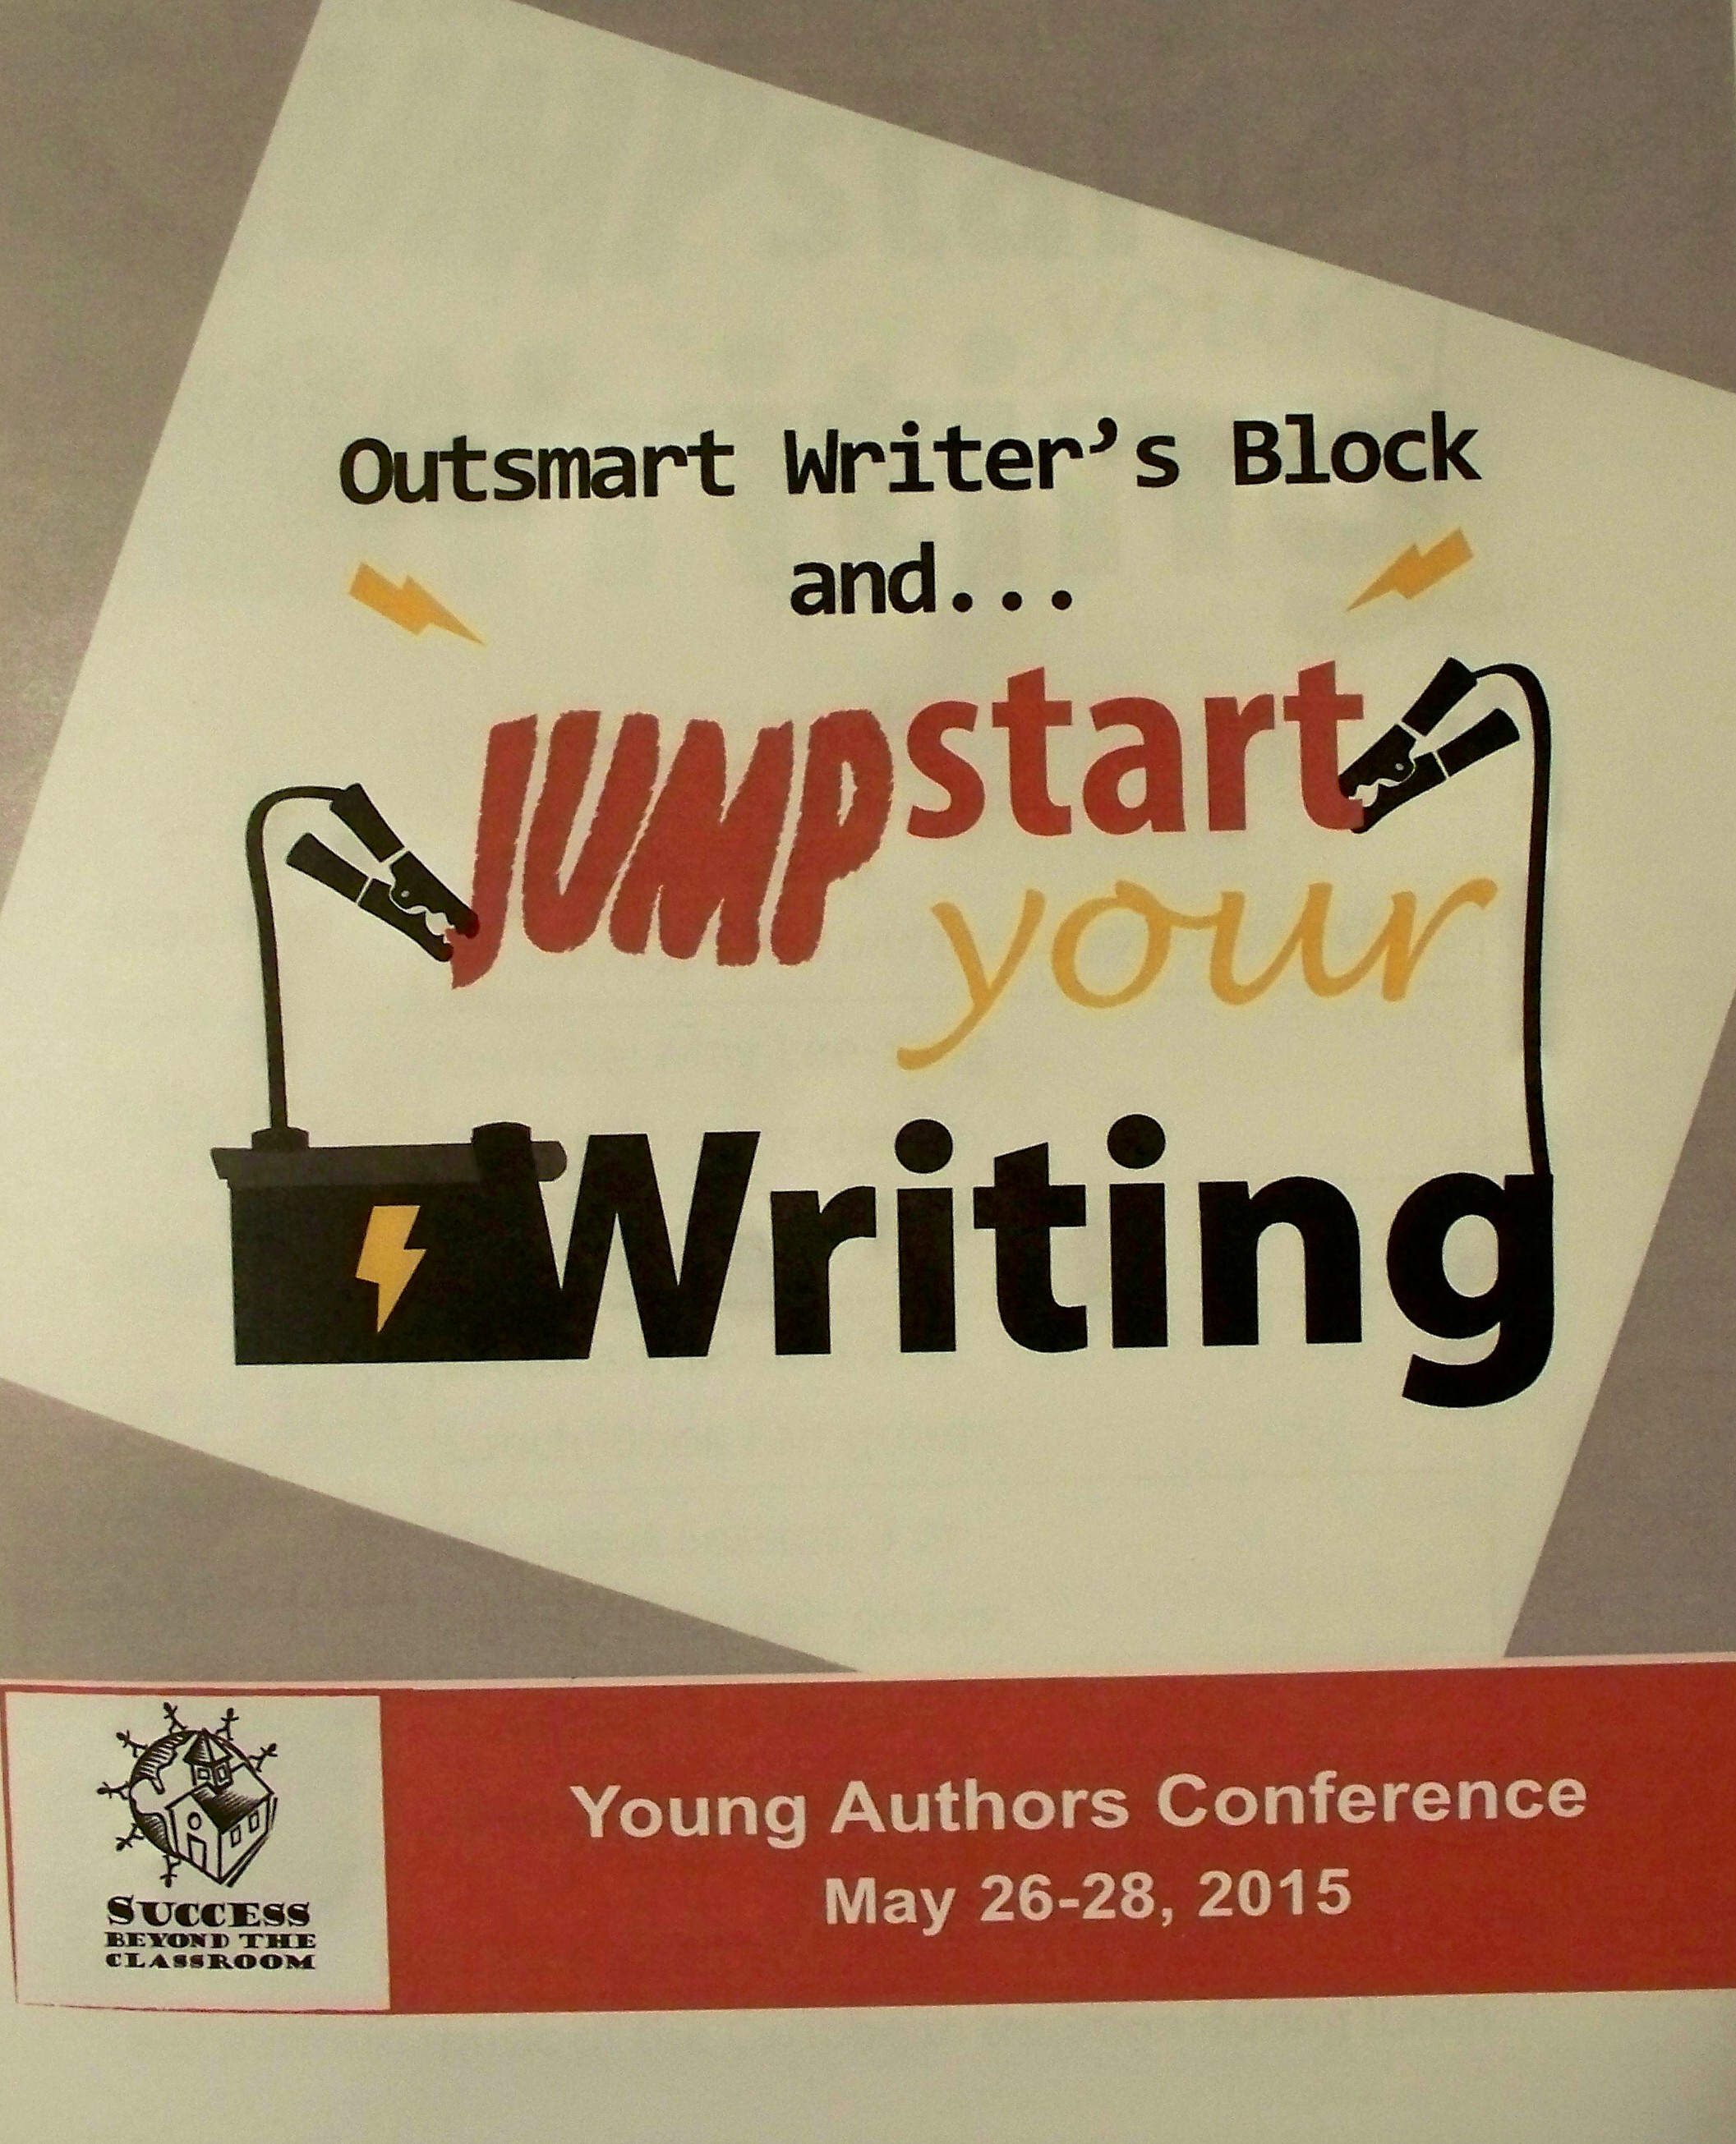 Once again, the Young Authors Conference kicks it into high gear.